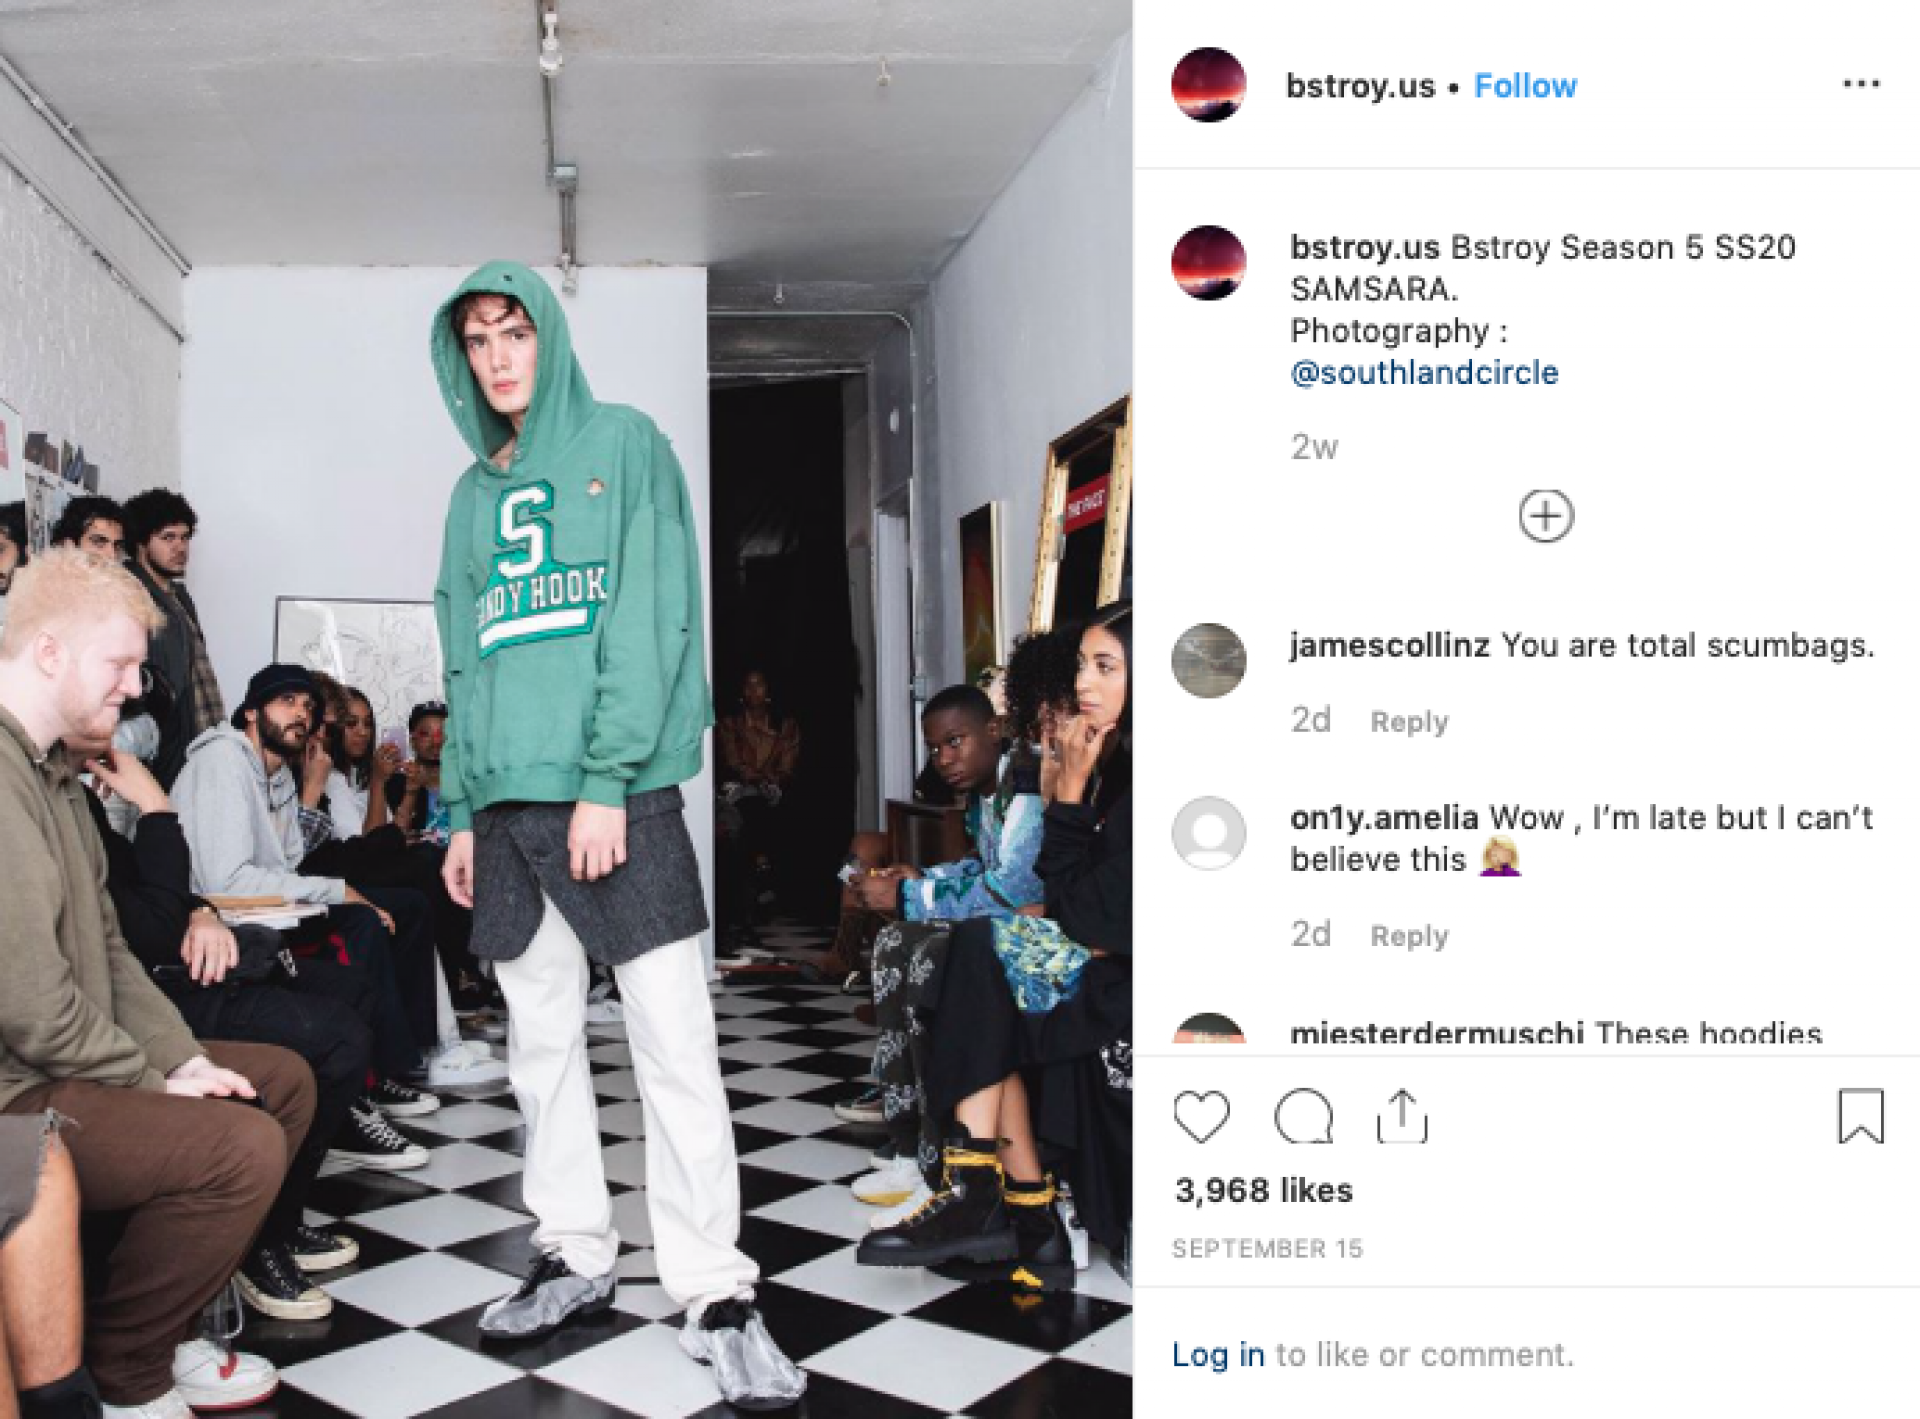 Screengrab of Bstroy's Instagram page promoting the bullet ridden streetwear.